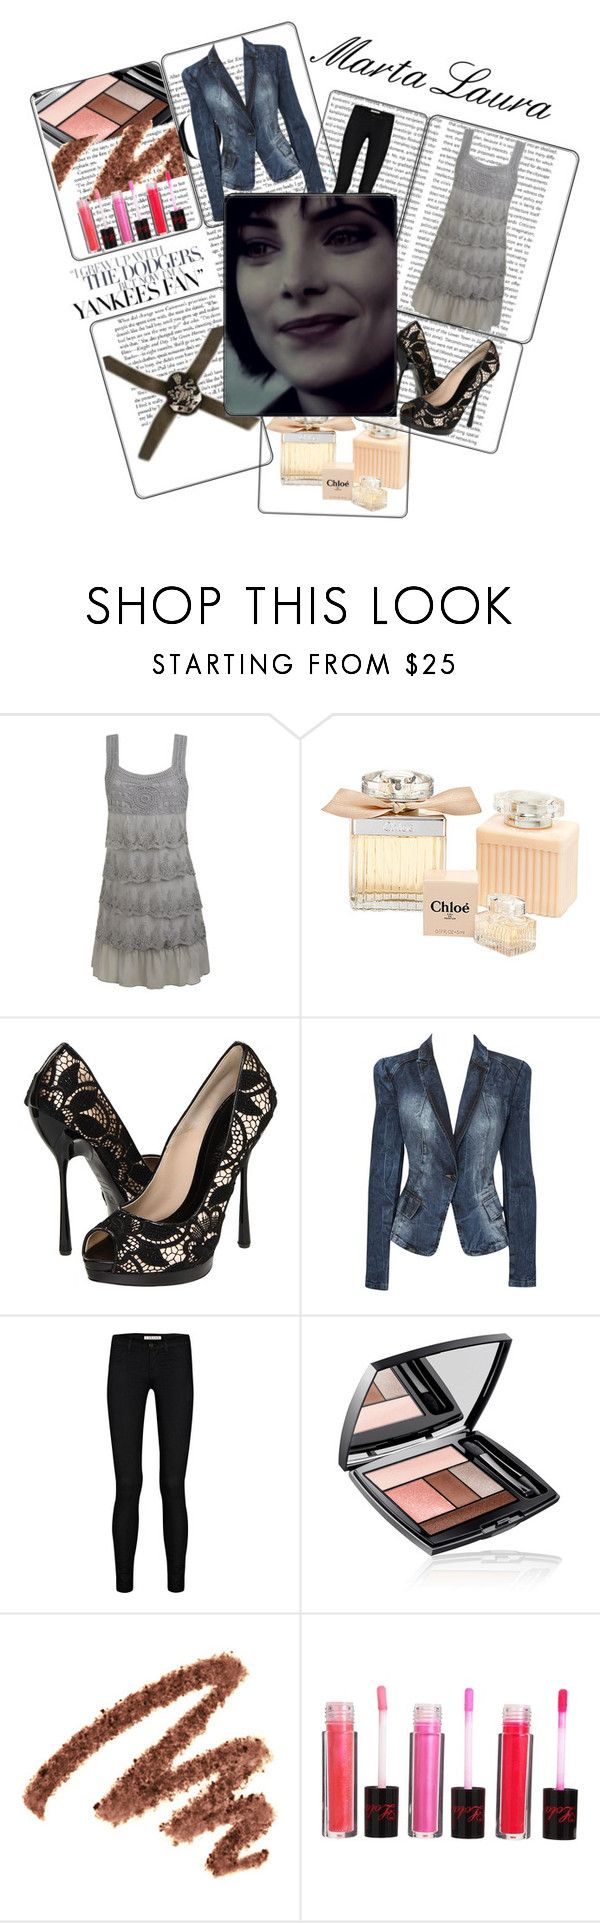 """""""Alice Cullen"""" by firewitch23 ❤ liked on Polyvore featuring Oris, Wet Seal, Chloé, Alexander McQueen, Oasis, J Brand, B. Ella, Lancôme, Yves Saint Laurent and Lola Cosmetics"""